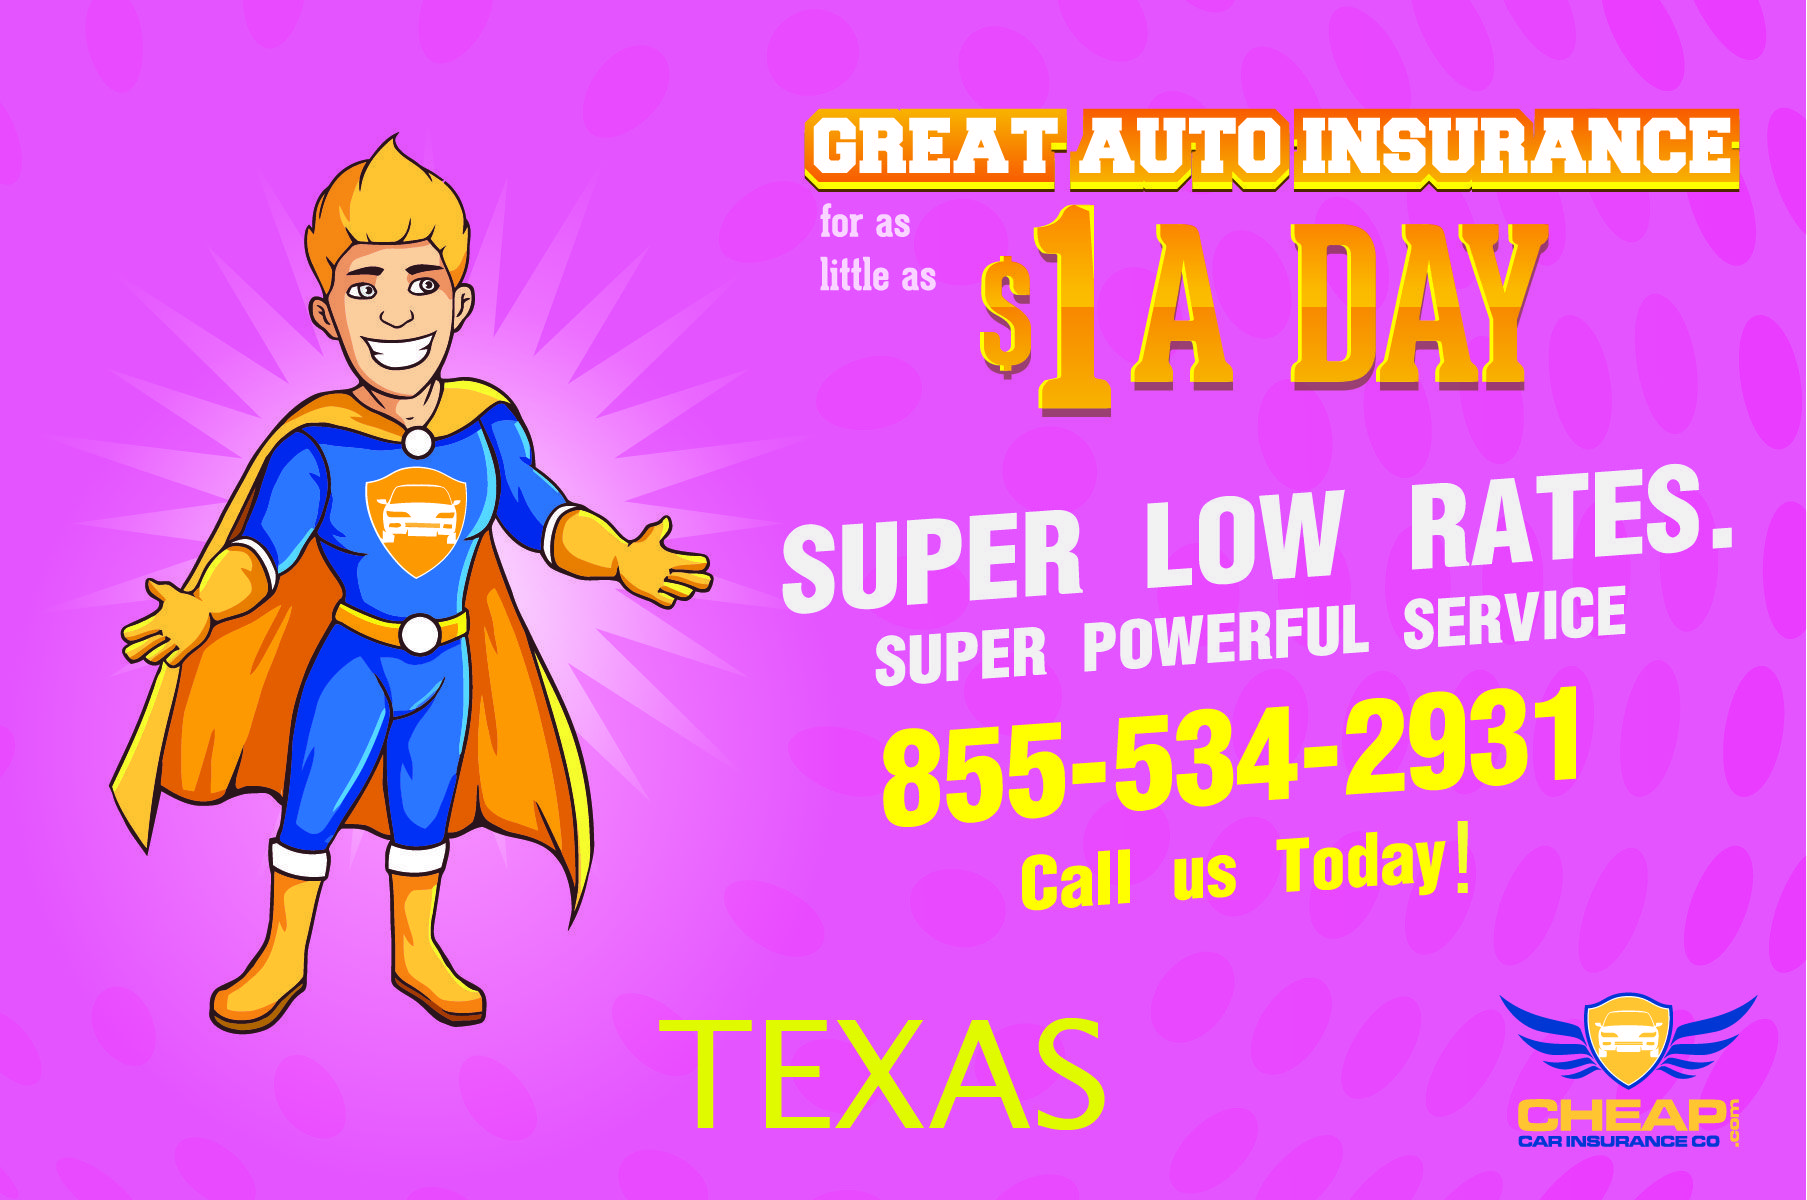 Affordable Auto Insurance Texas . We offer up to 40